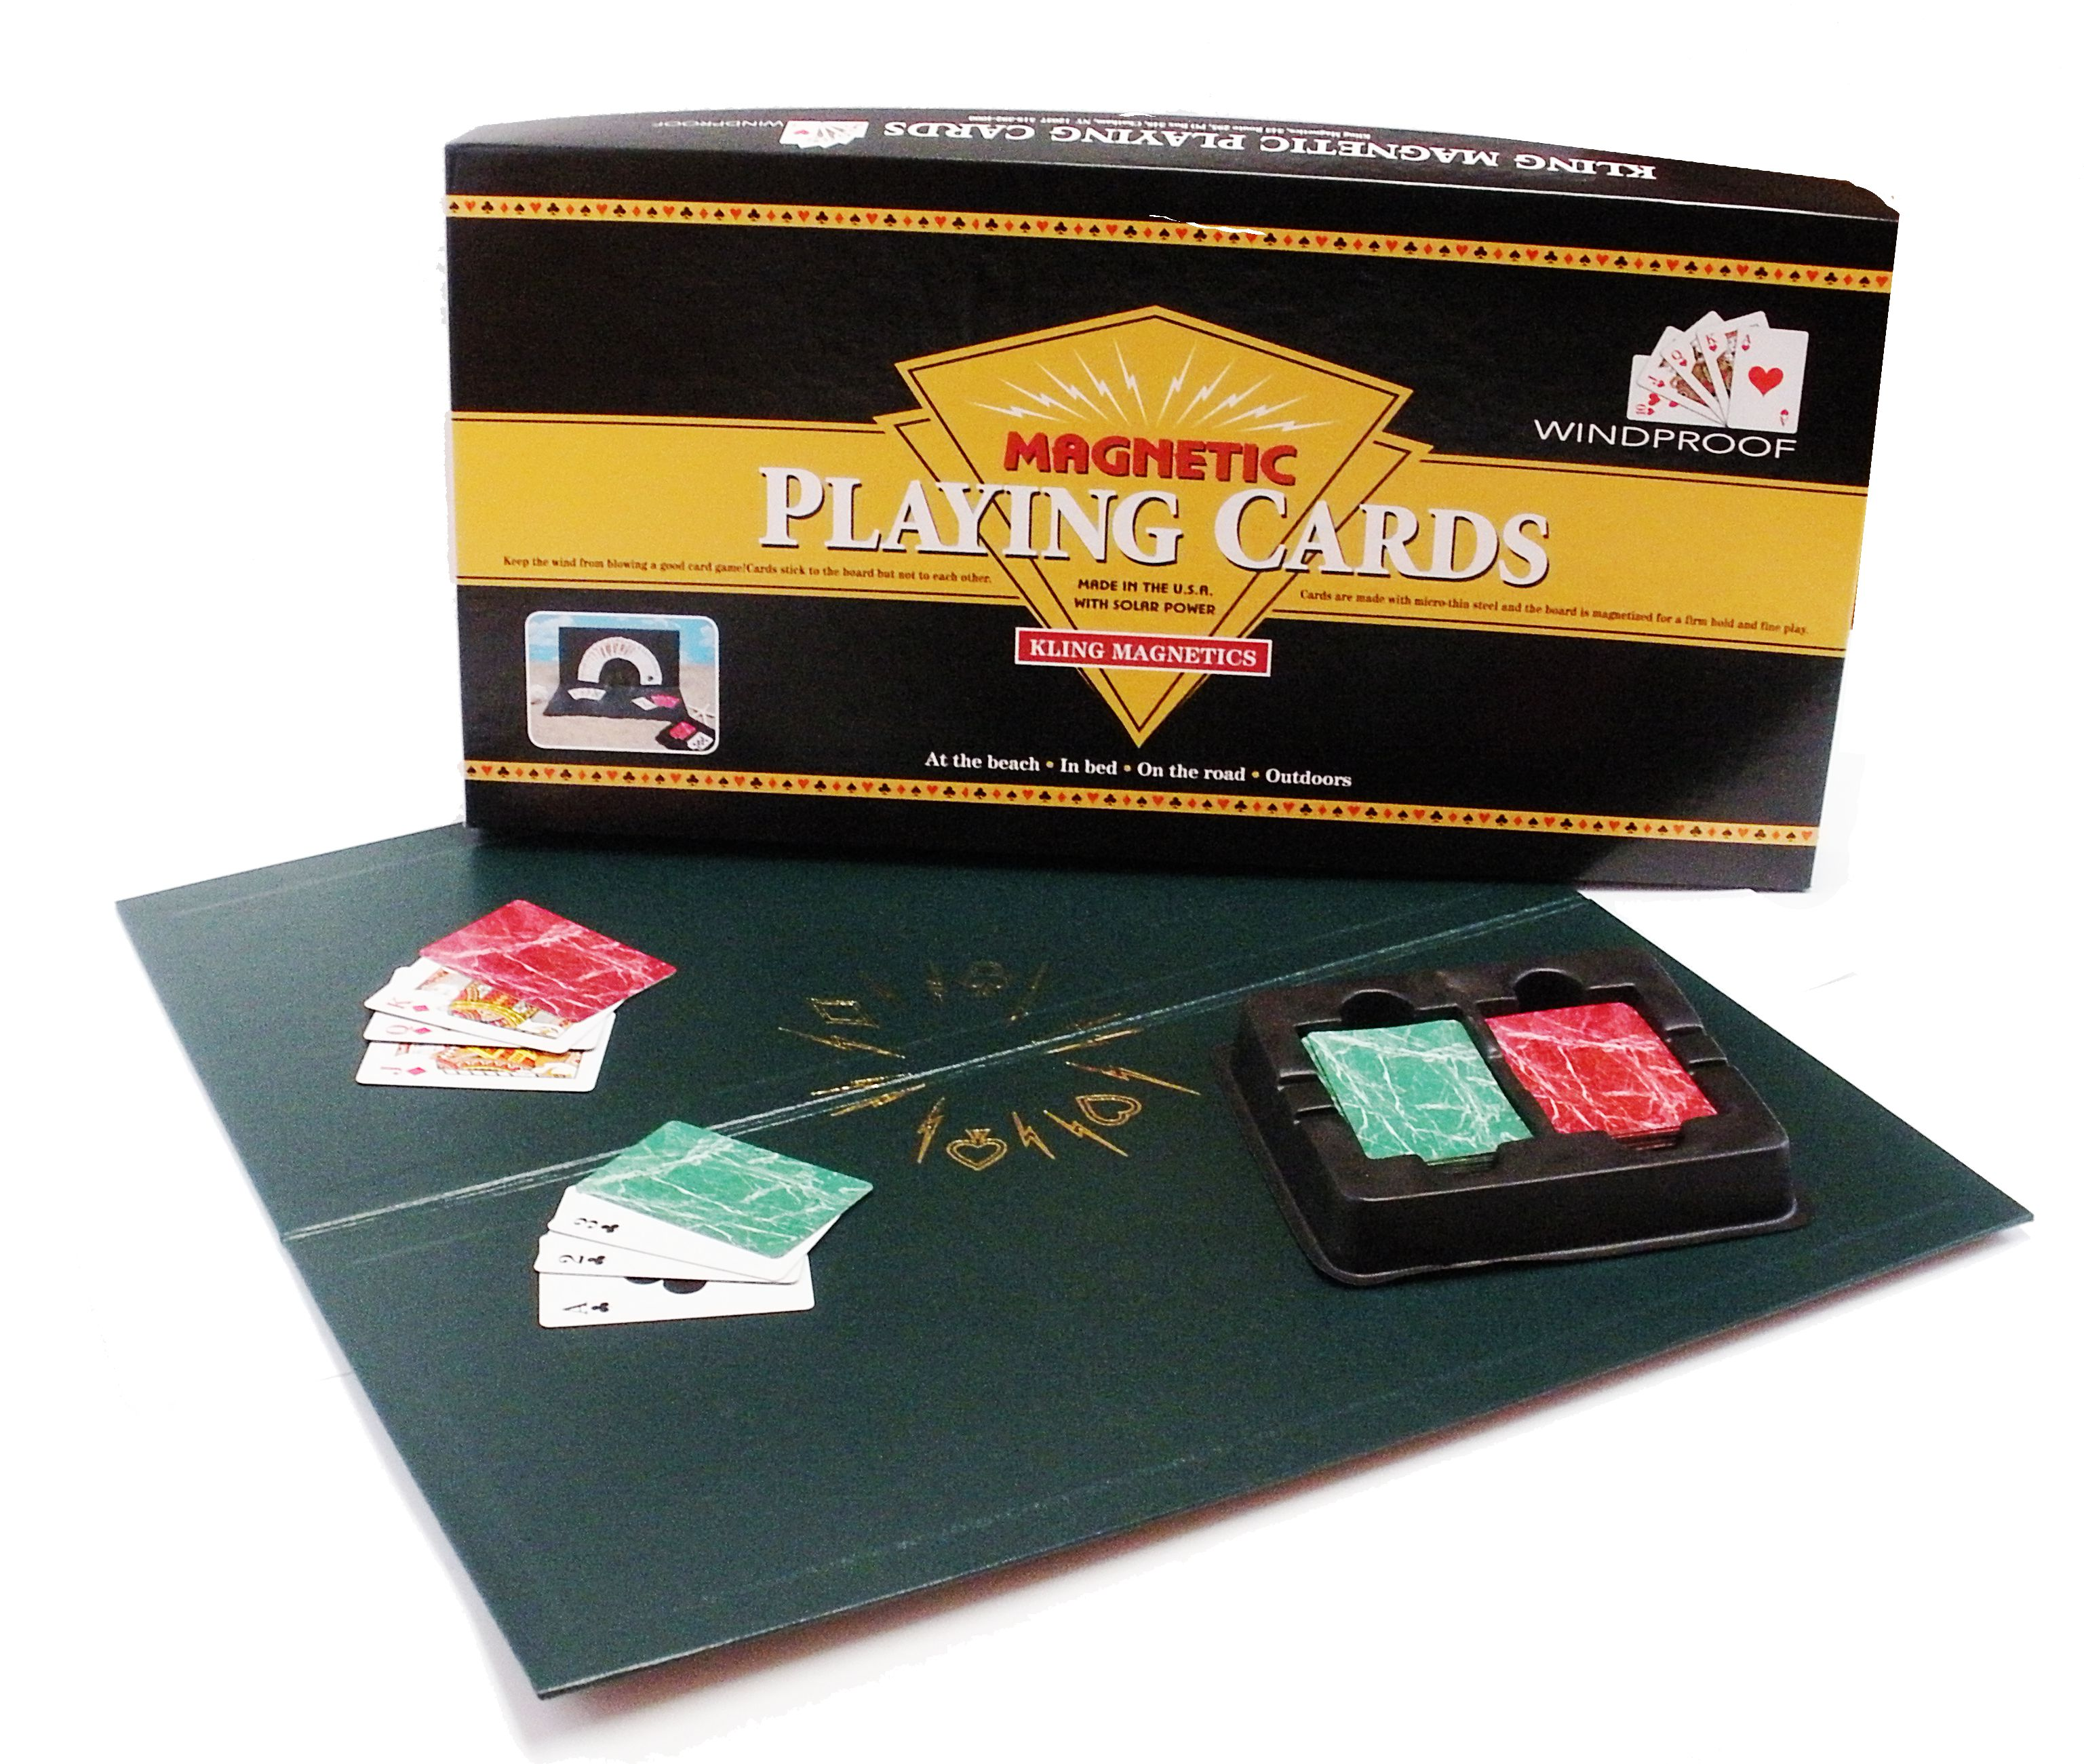 New Edition Kling Magnetic Playing Cards with Red Deck & Green Deck by Kling Magnetics